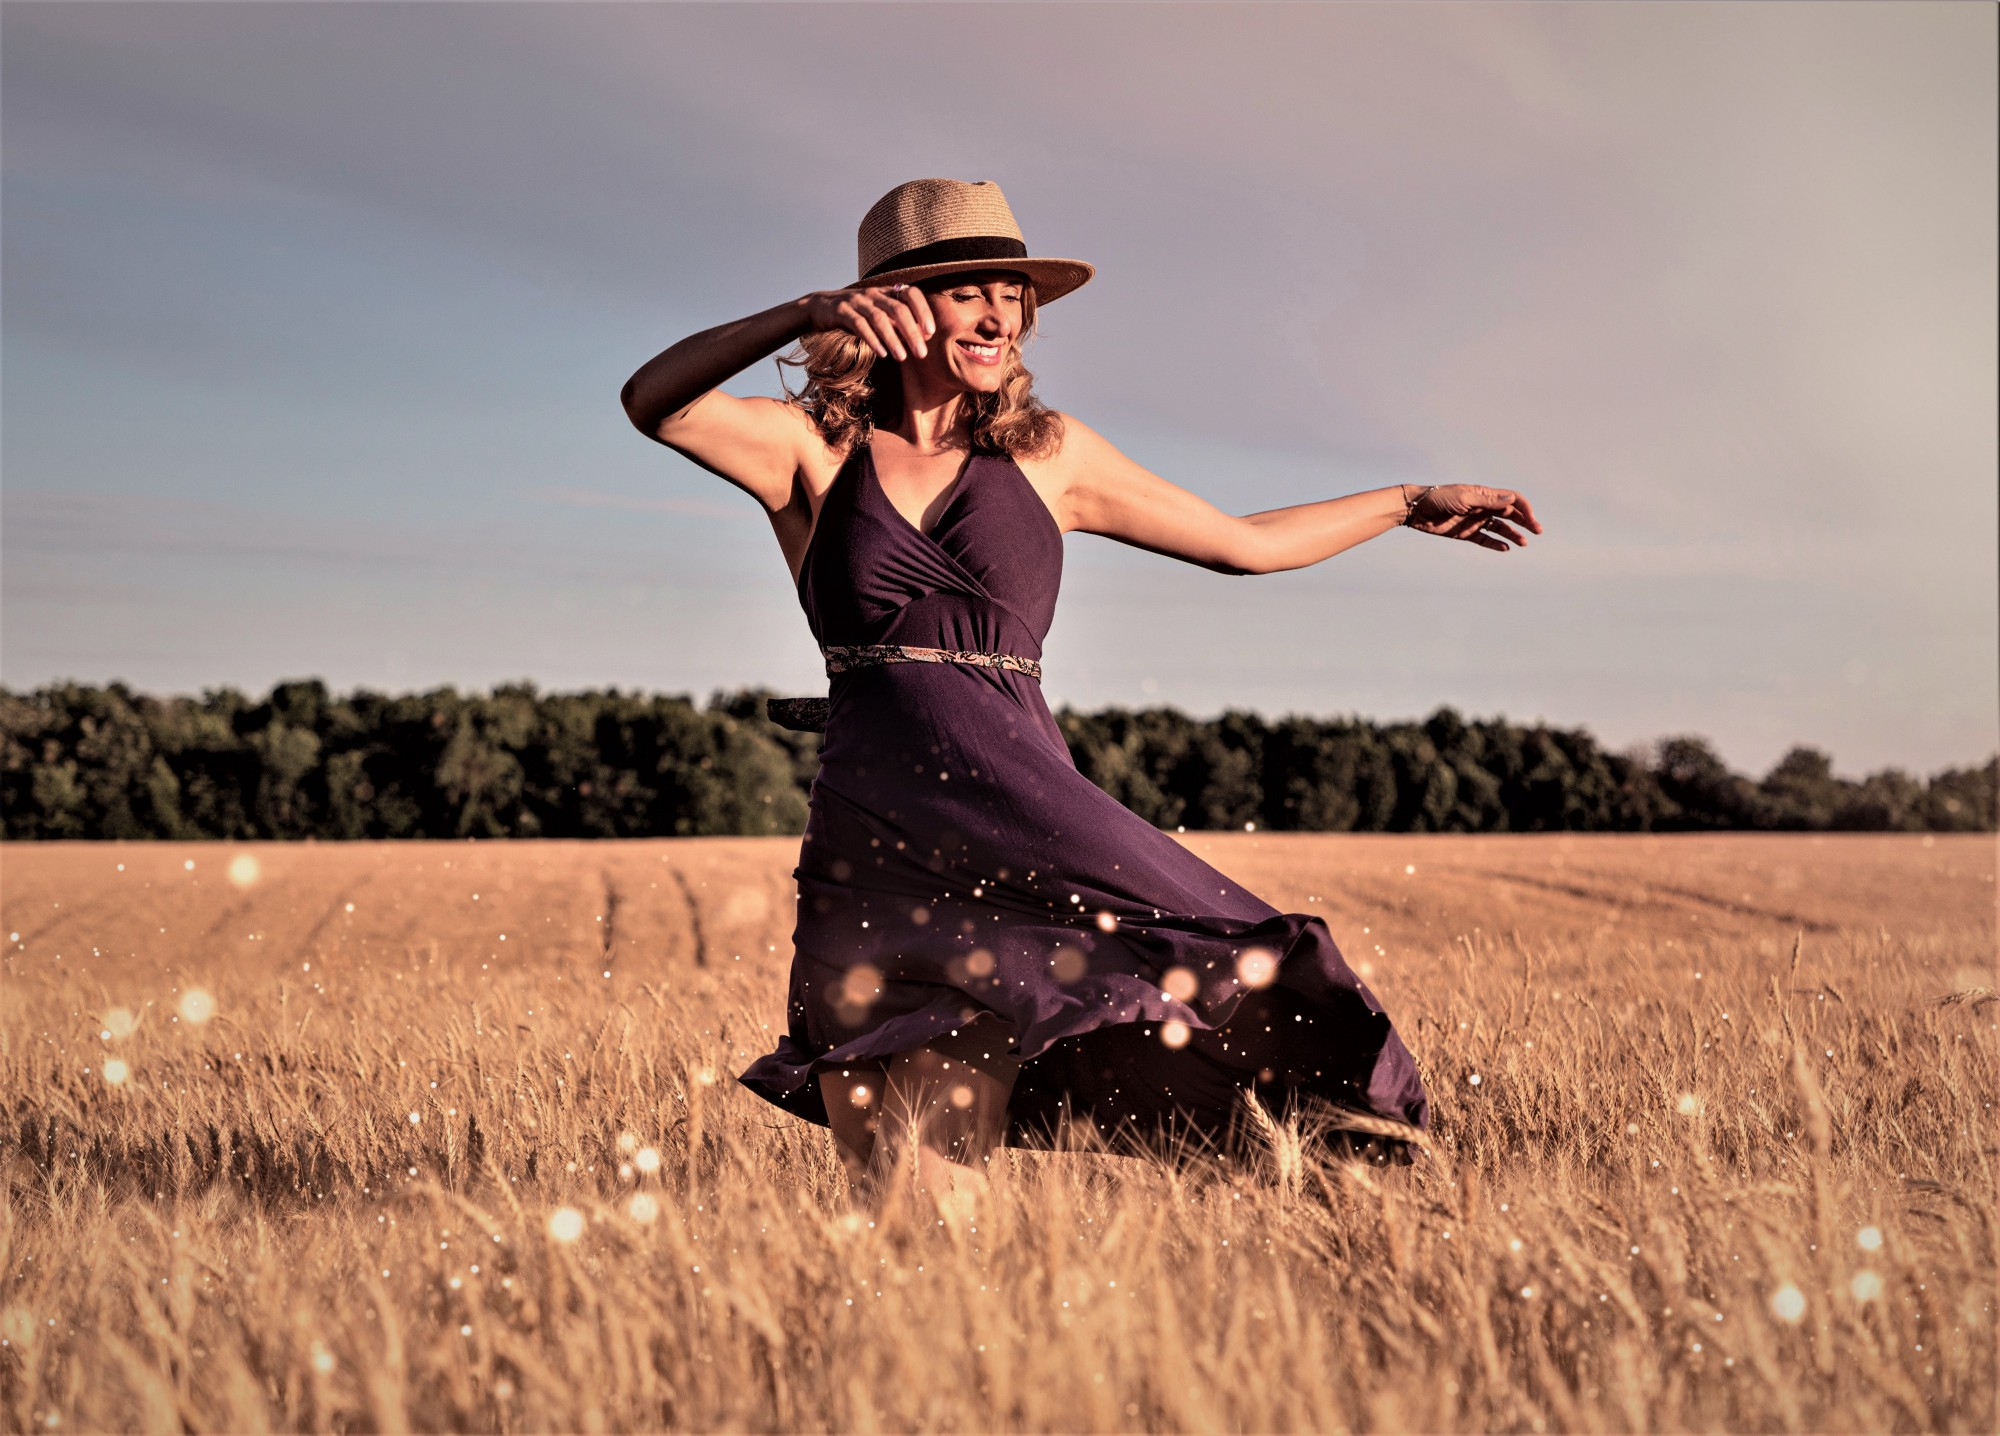 smiling woman wearing hat and brown dress dancing in field